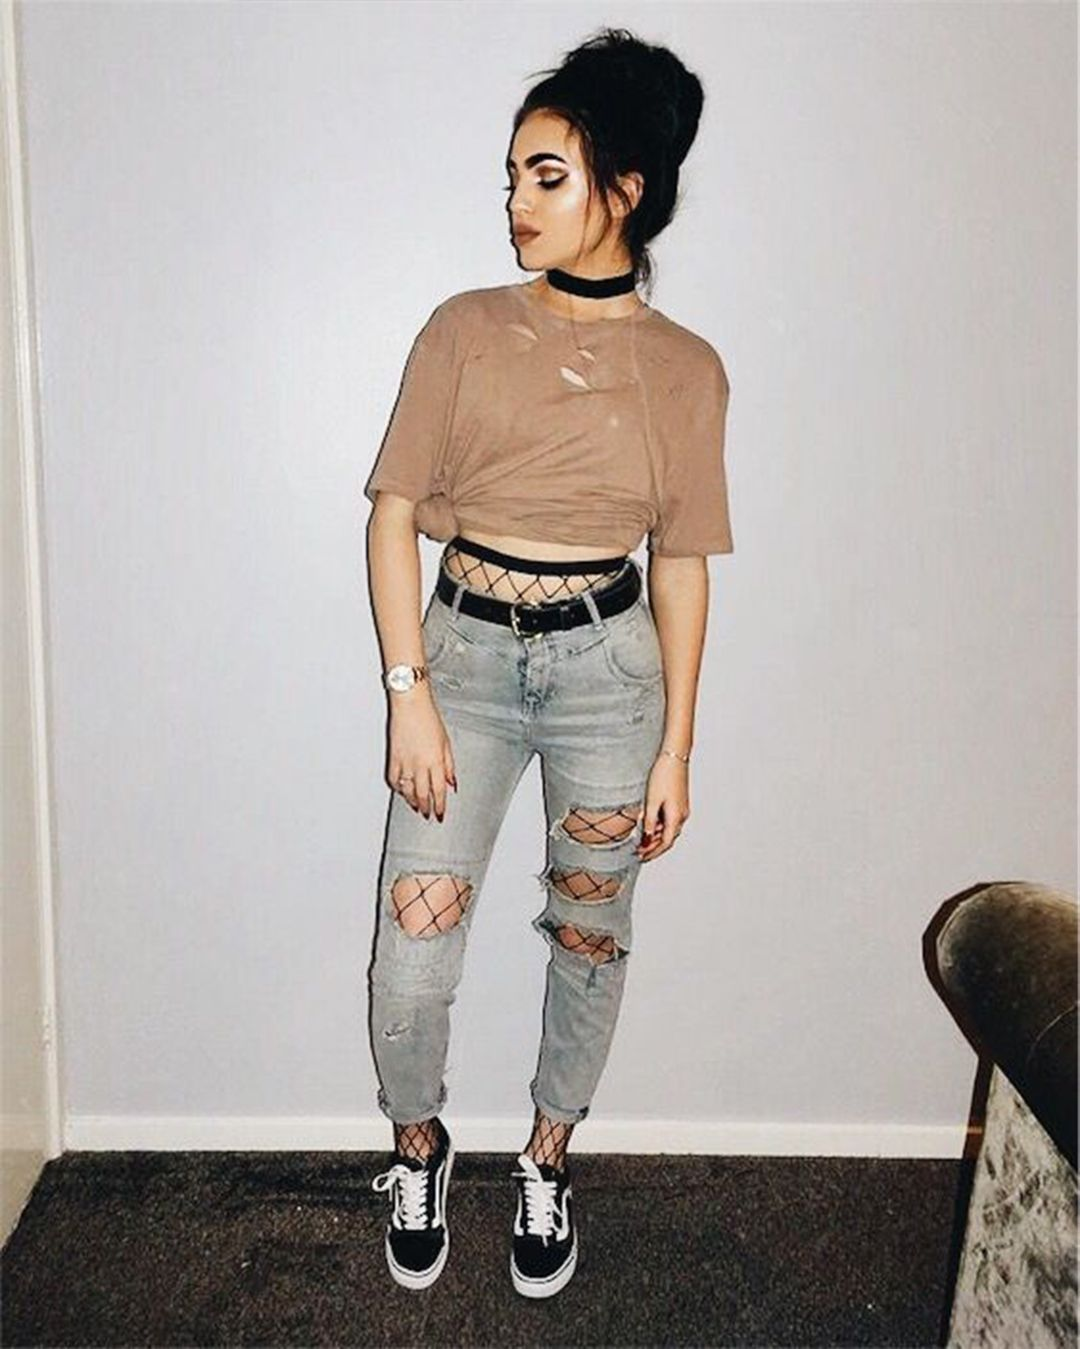 Tumblr Outfits With Broken Jeans That Are Fashion Outfits Con Jeans Cool Outfits Tumblr Outfits